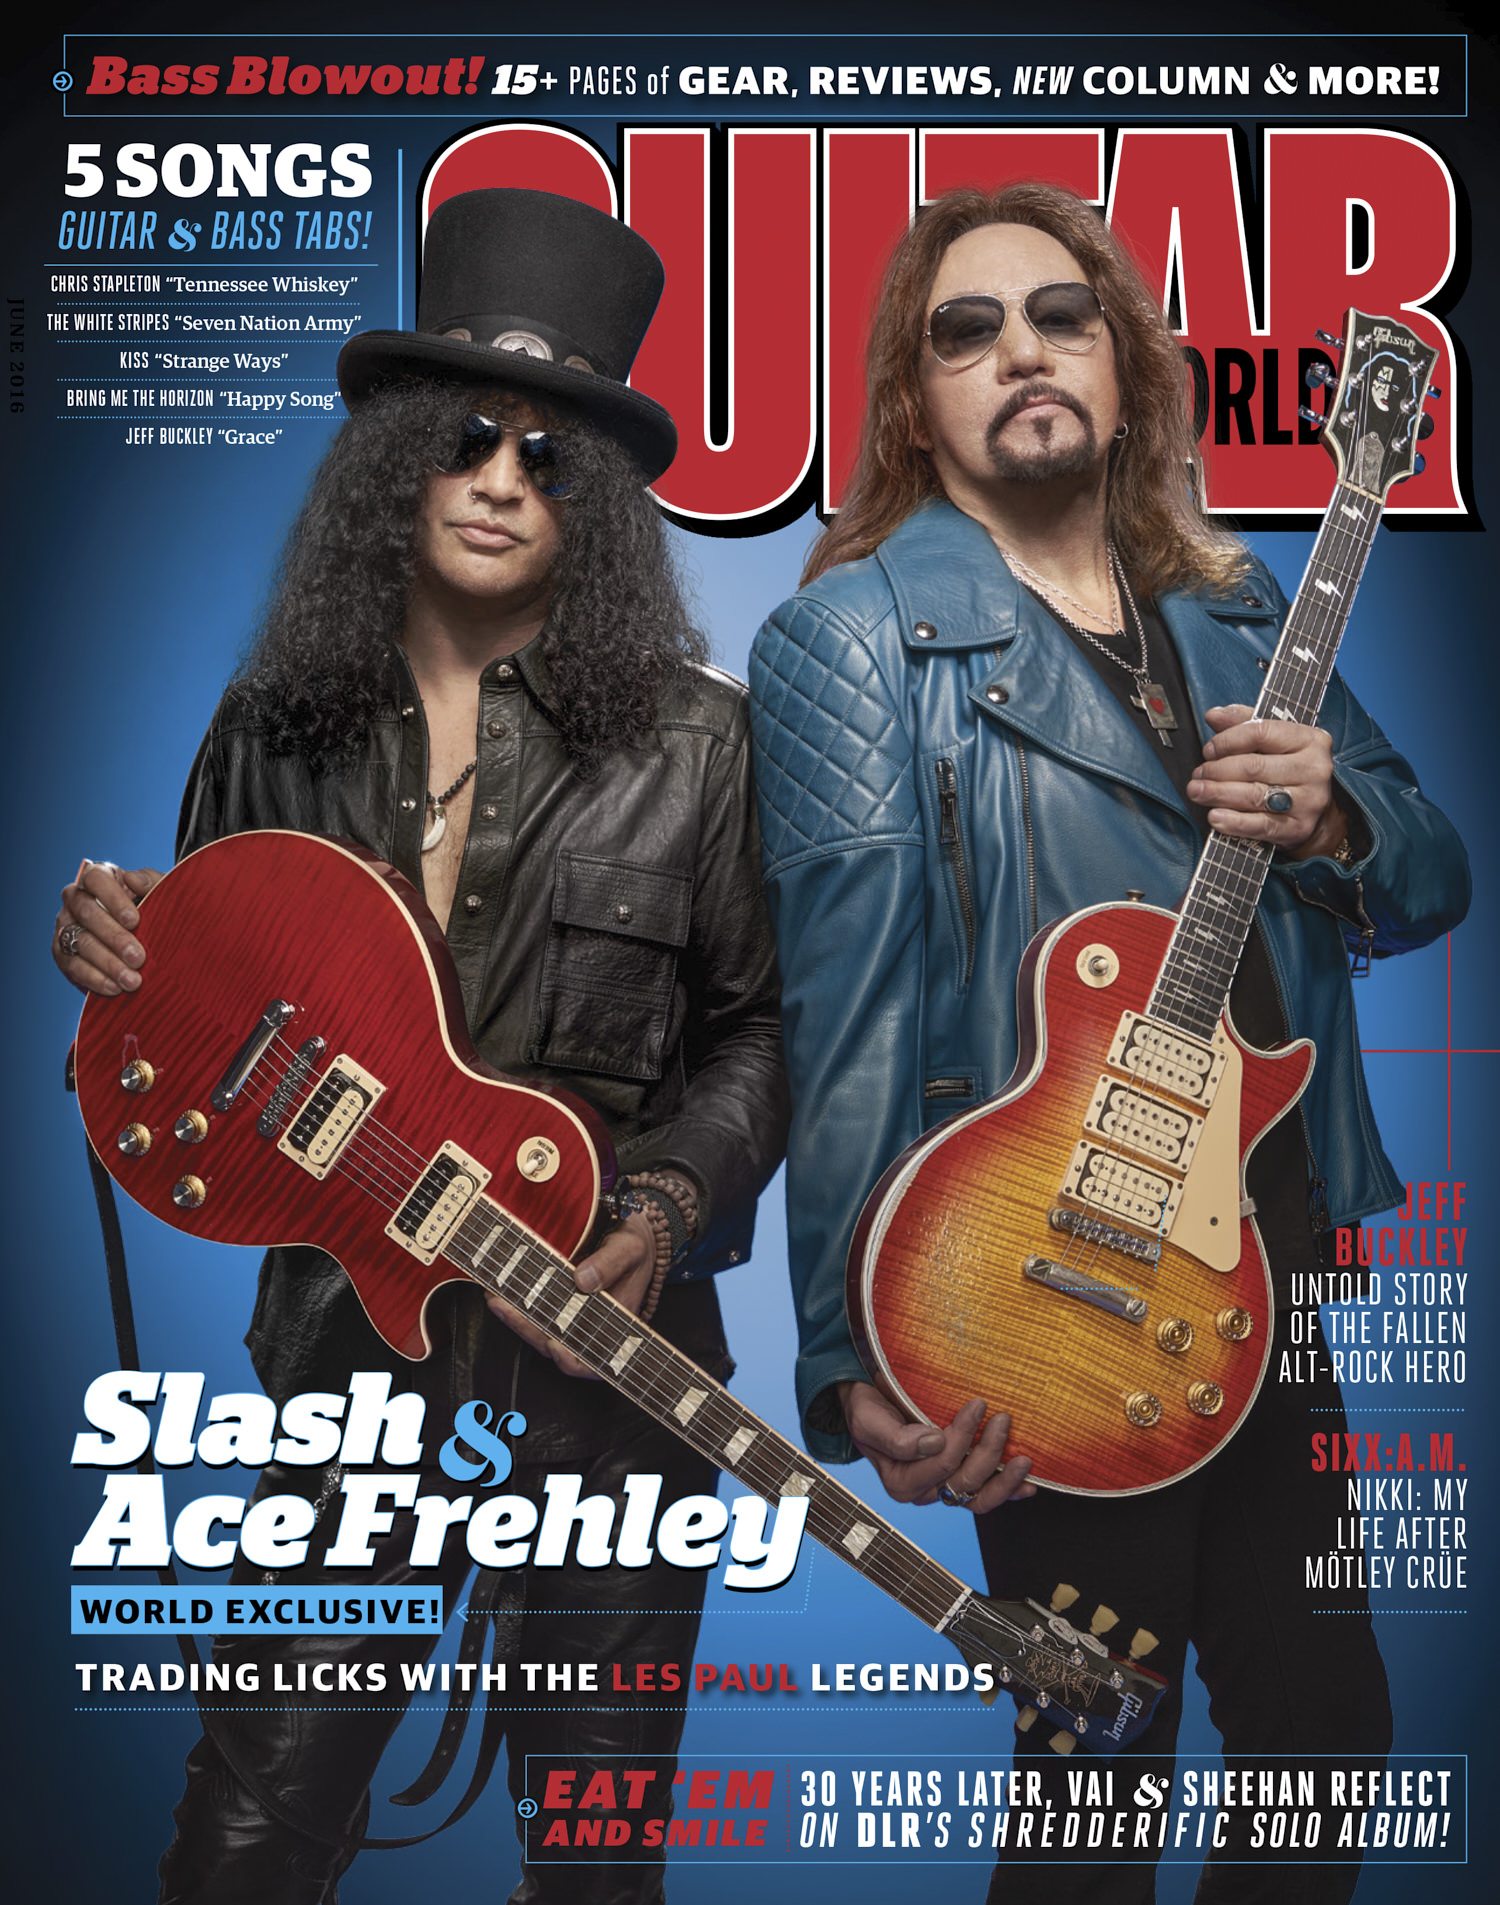 Slash and Ace Frehley